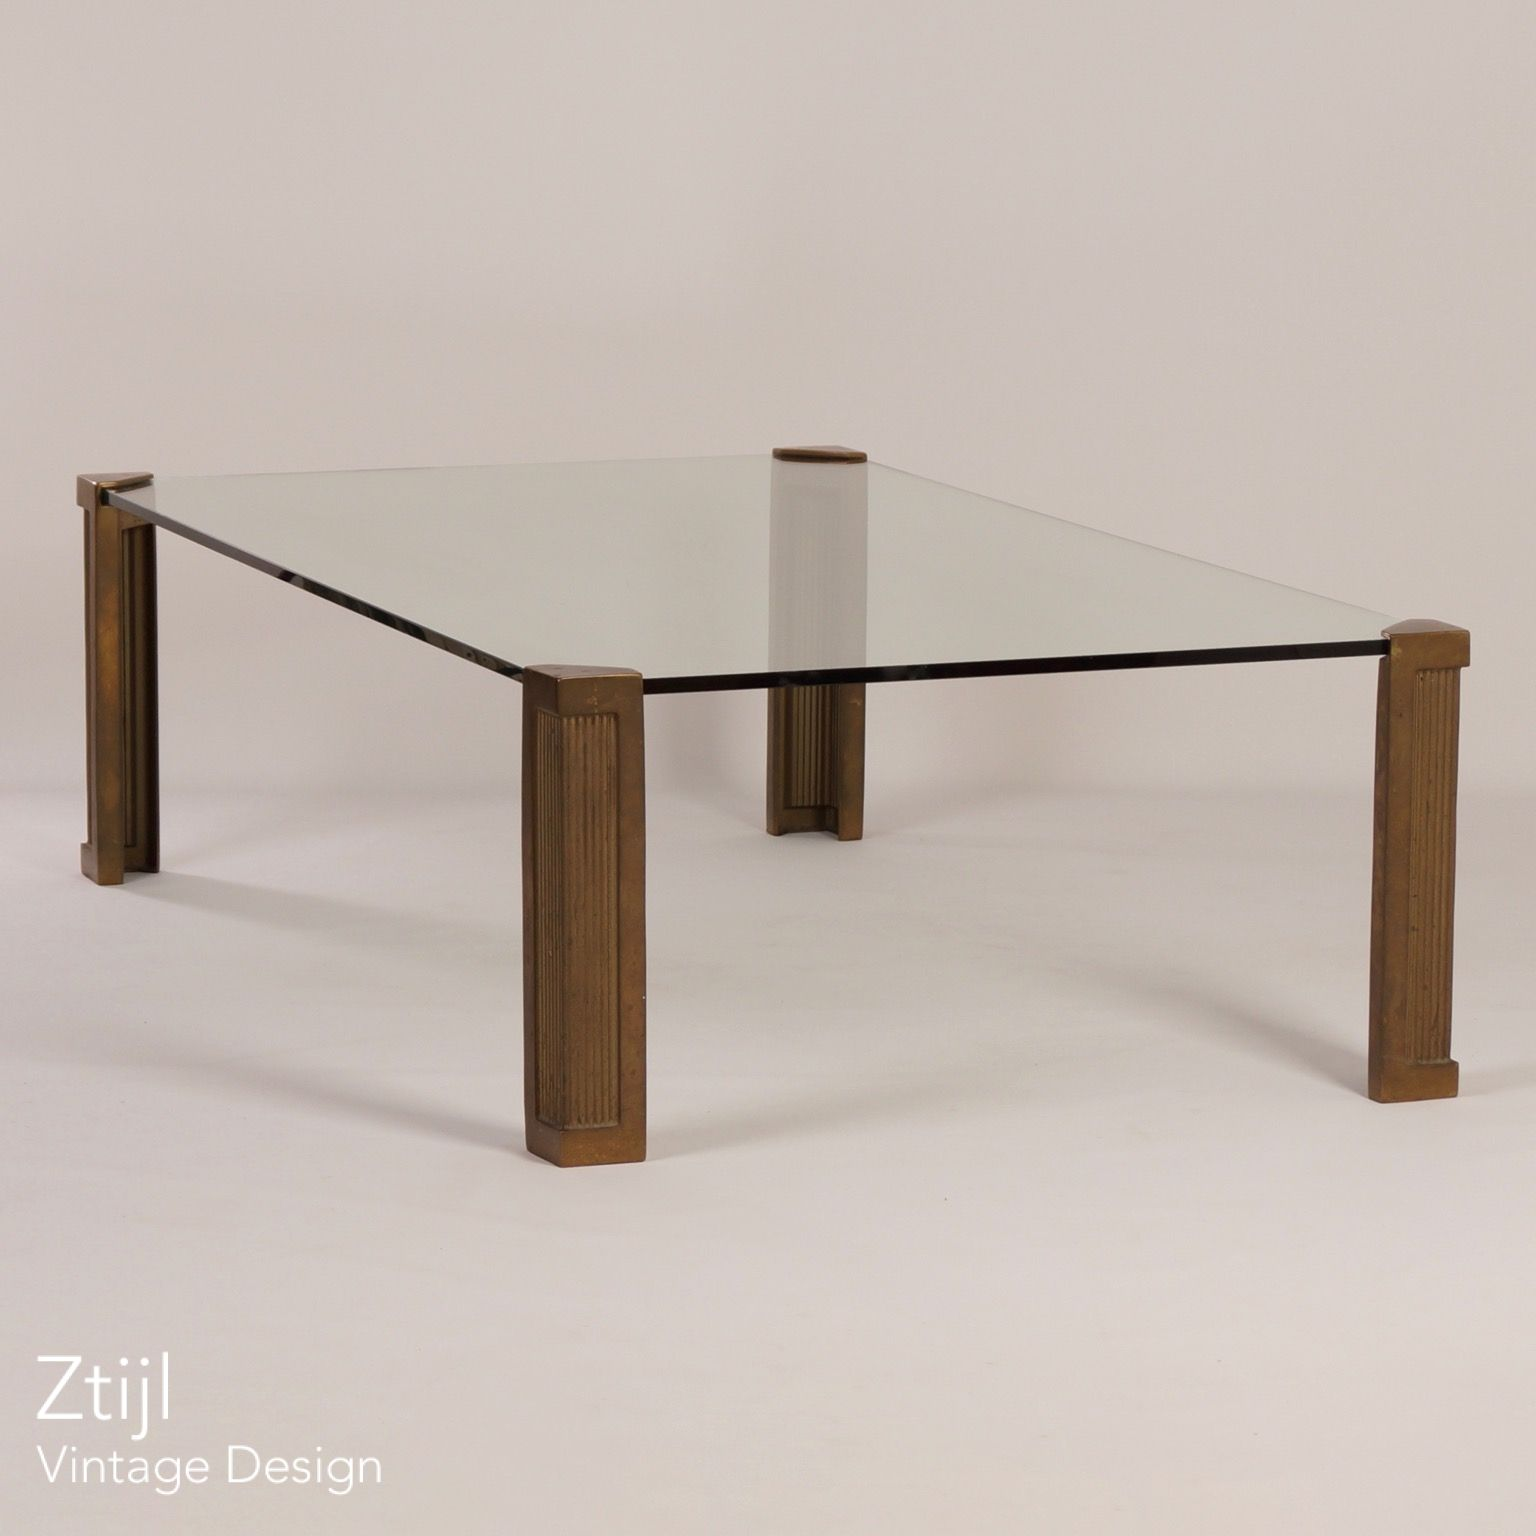 Ghyczy Salon Tafel.Coffee Table T14d By Peter Ghyczy For Studio Ghyczy 1970s